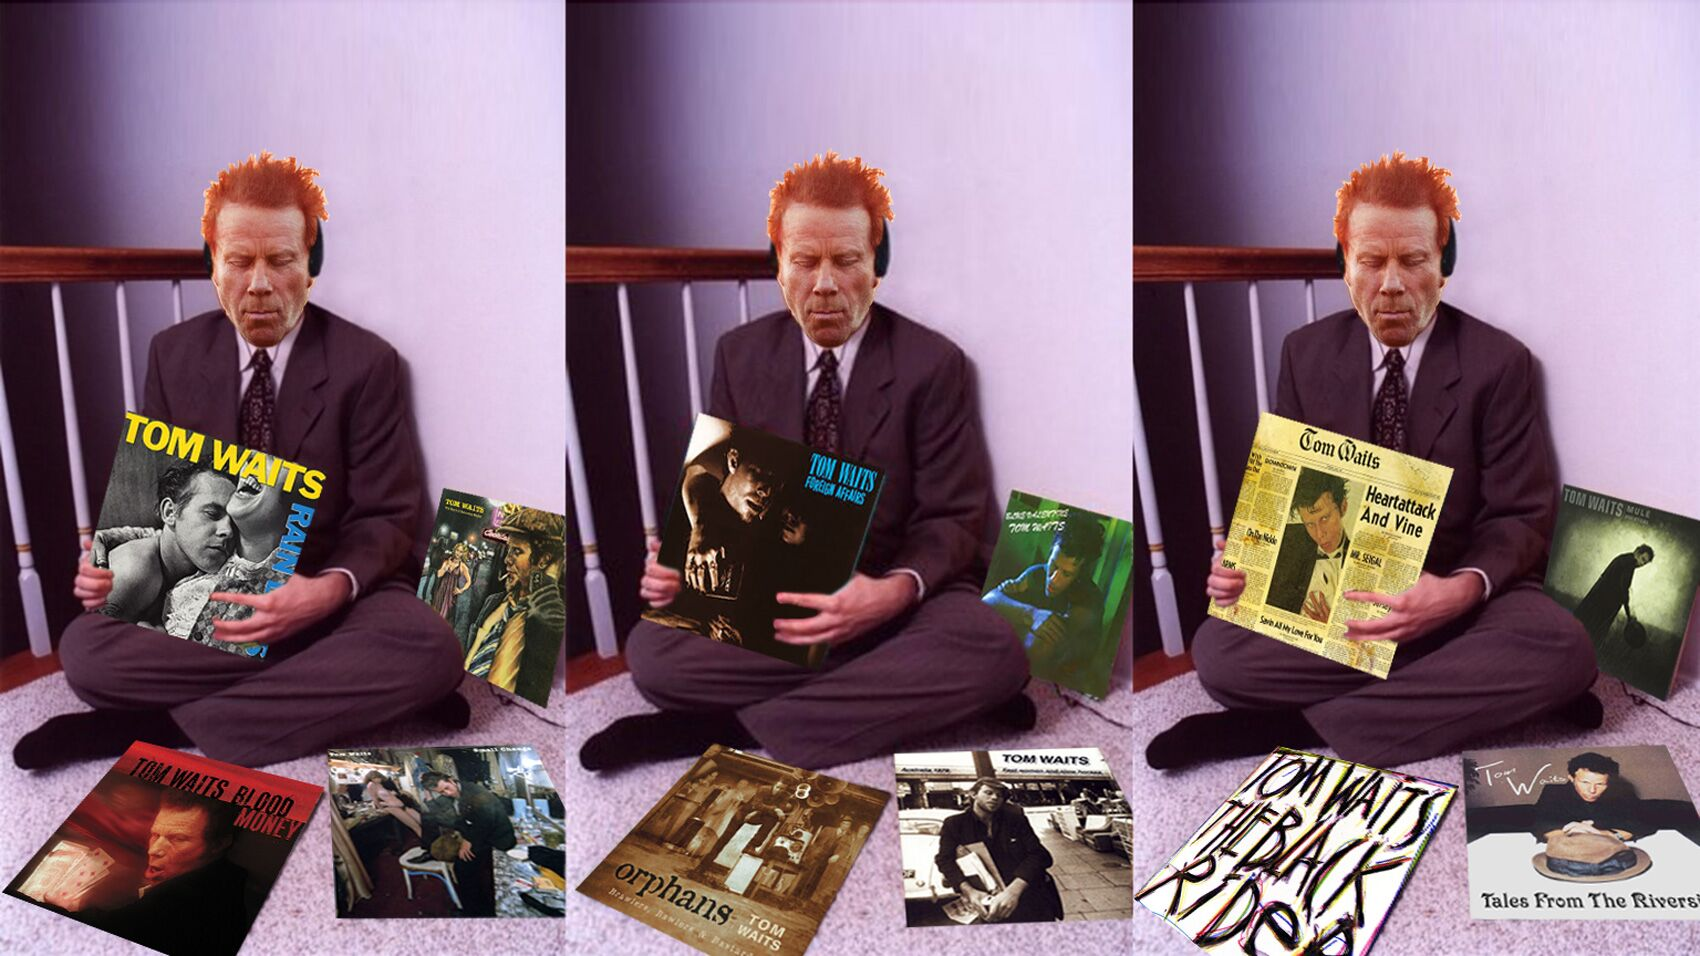 The Definitive Tom Waits Playlist, Curated by Tom Waits | Riot Fest